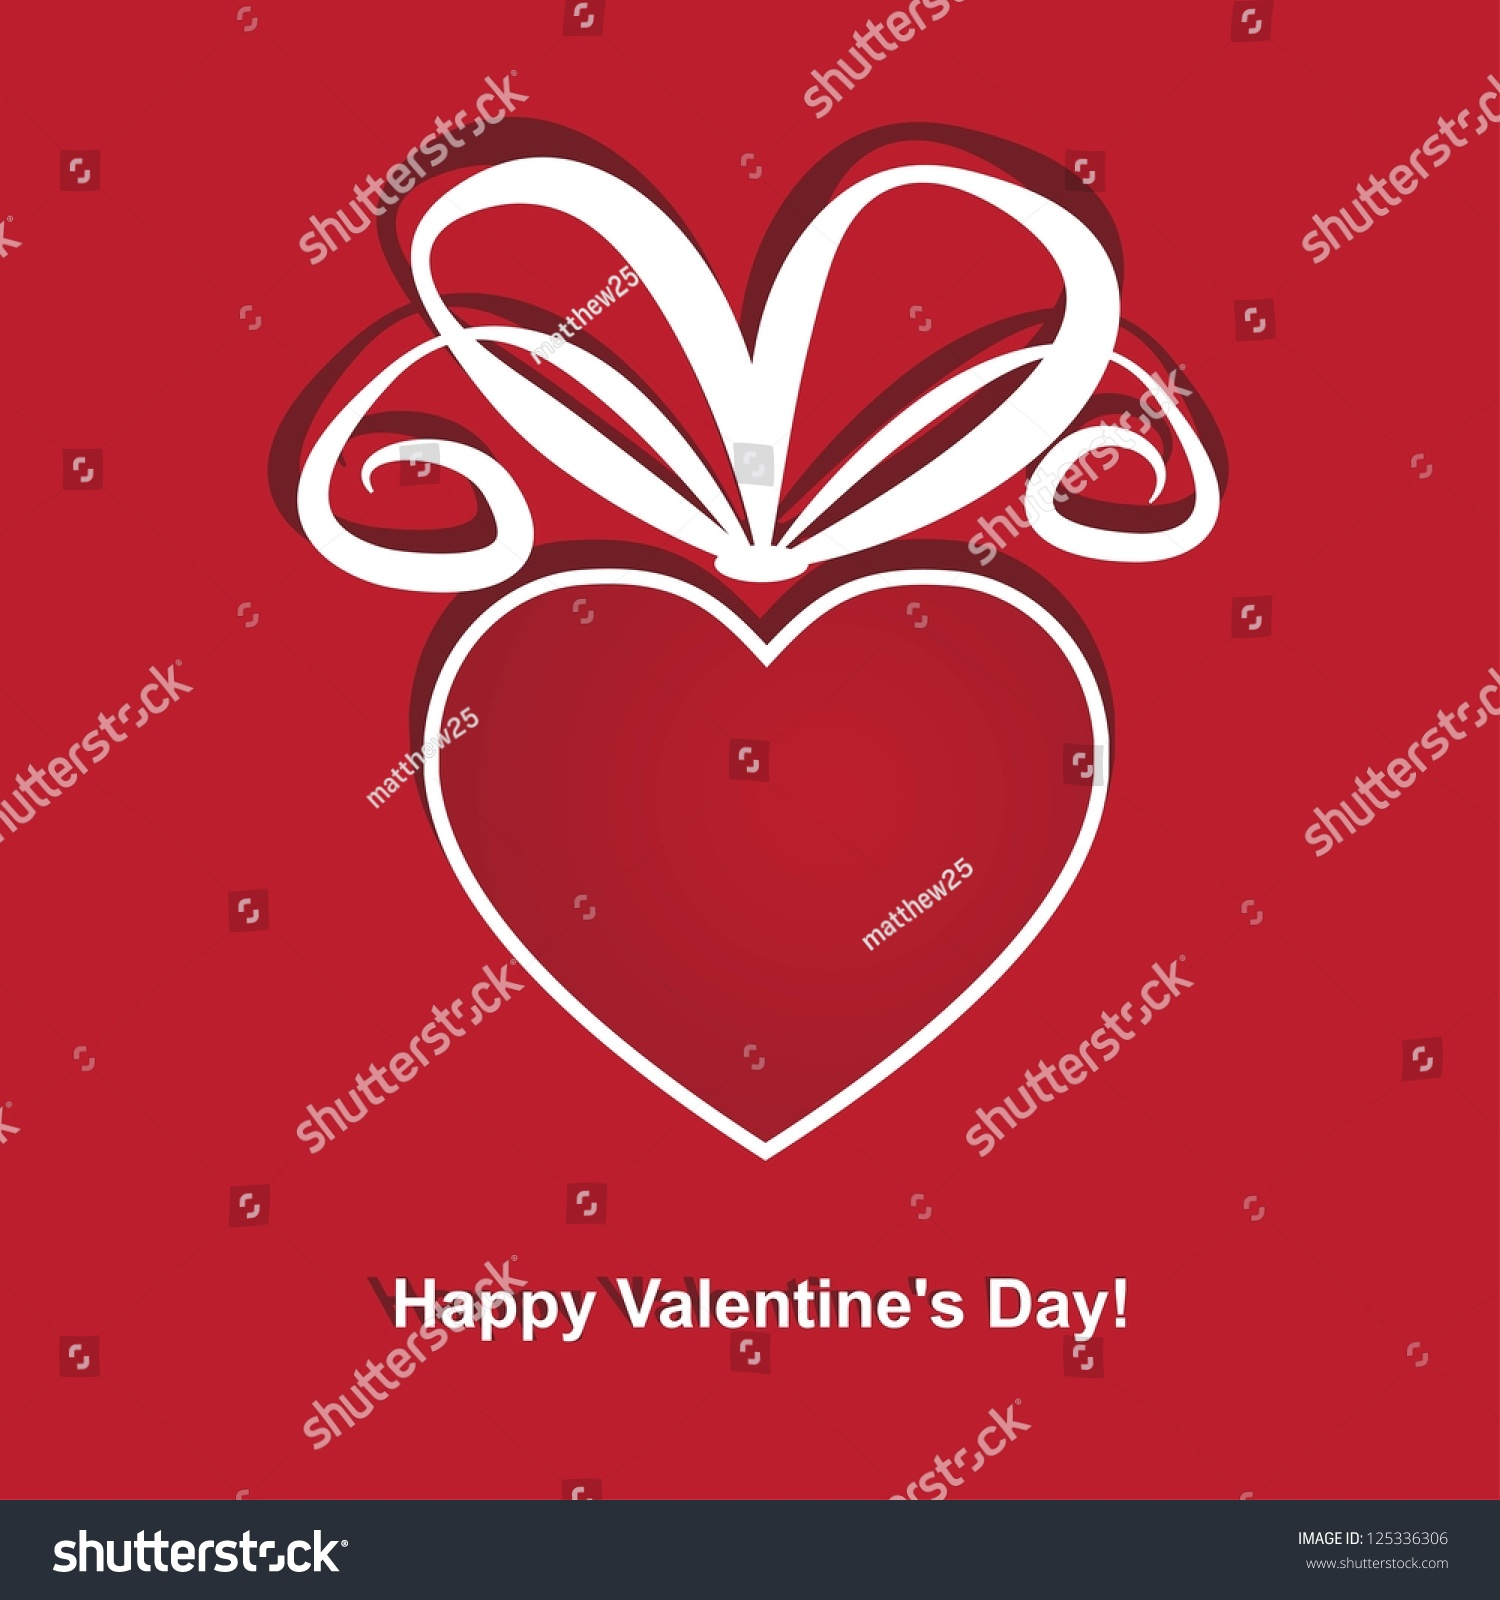 Greeting cards valentines day heartshaped red stock vector 125336306 greeting cards for valentines day a heart shaped red gift kristyandbryce Gallery